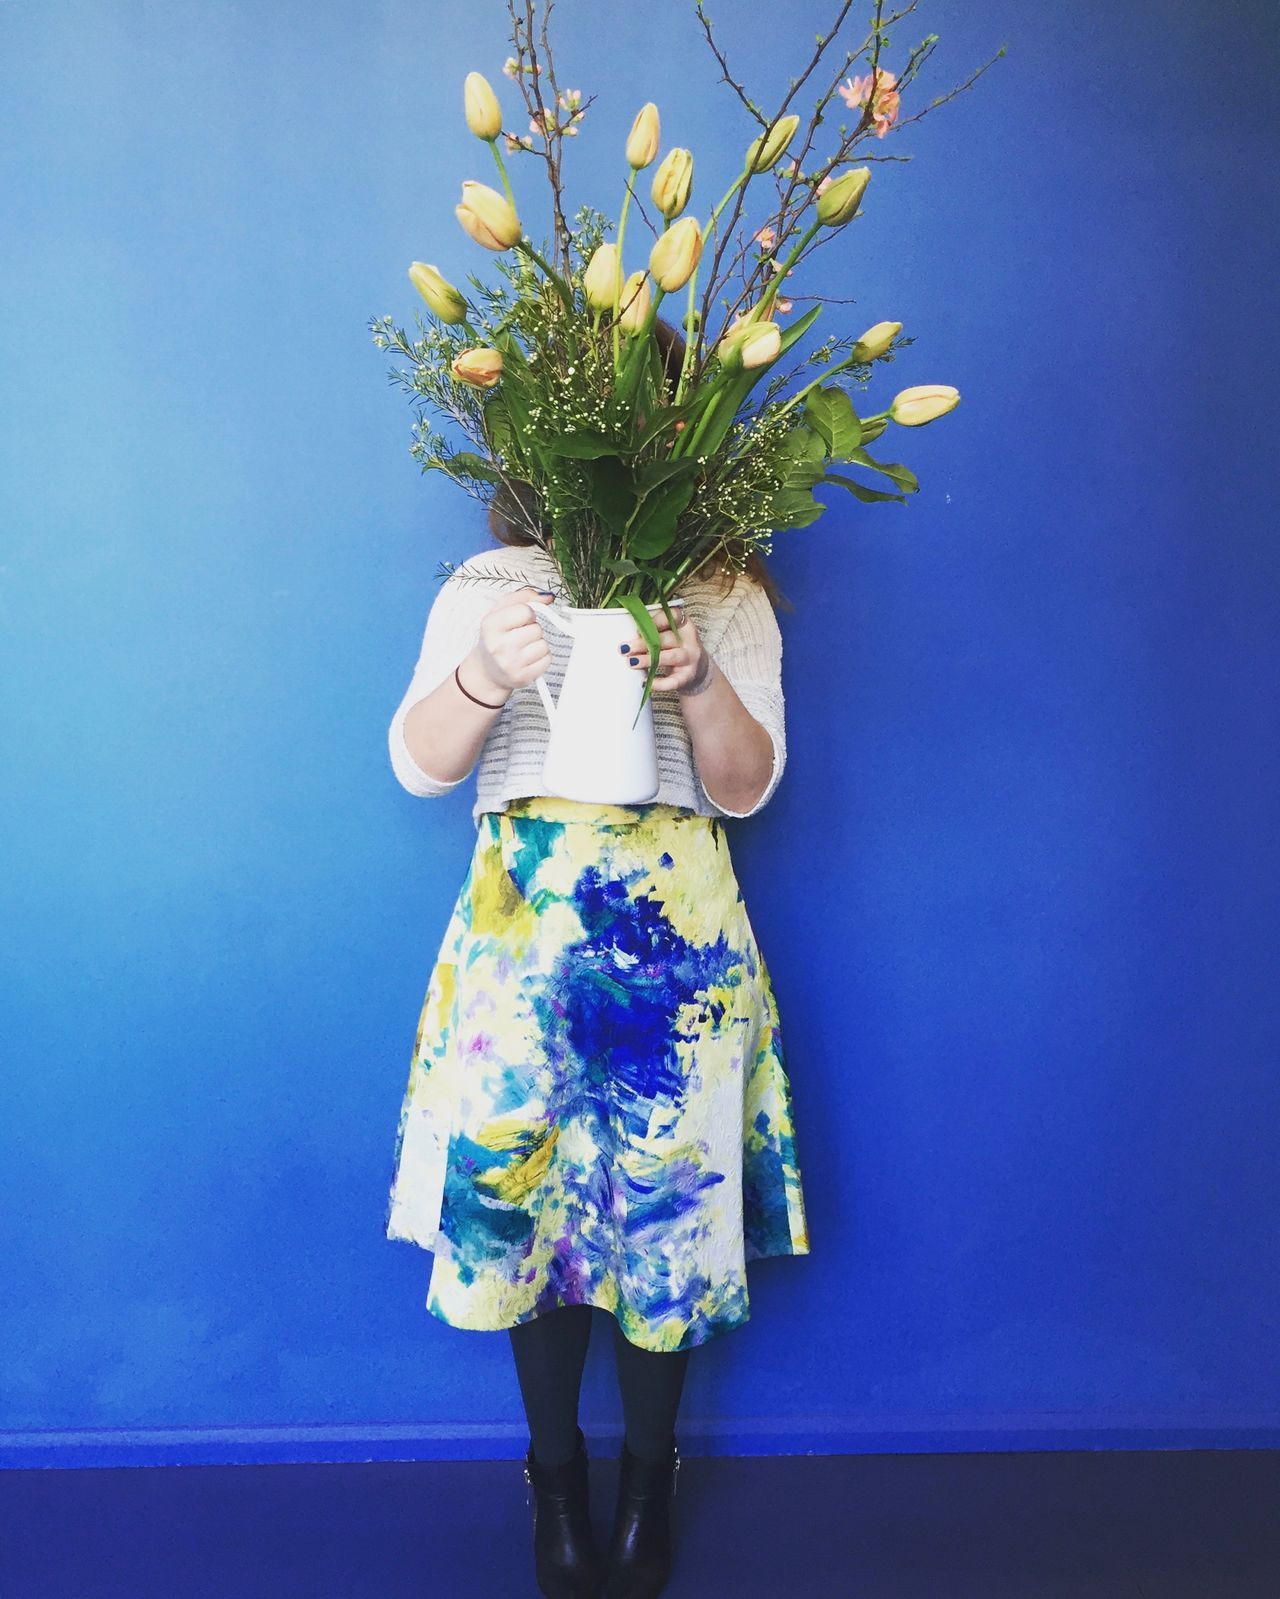 Blue Bouquet Bunch Of Flowers Celebration EyeEm Team Fashion Flower Flower Arrangement Flower Head Fragility Freshness Happiness Holding Leisure Activity One Person Outdoors Real People Skirt Sky Spring Standing Tulips Unrecognizable Person Wreath Yellow